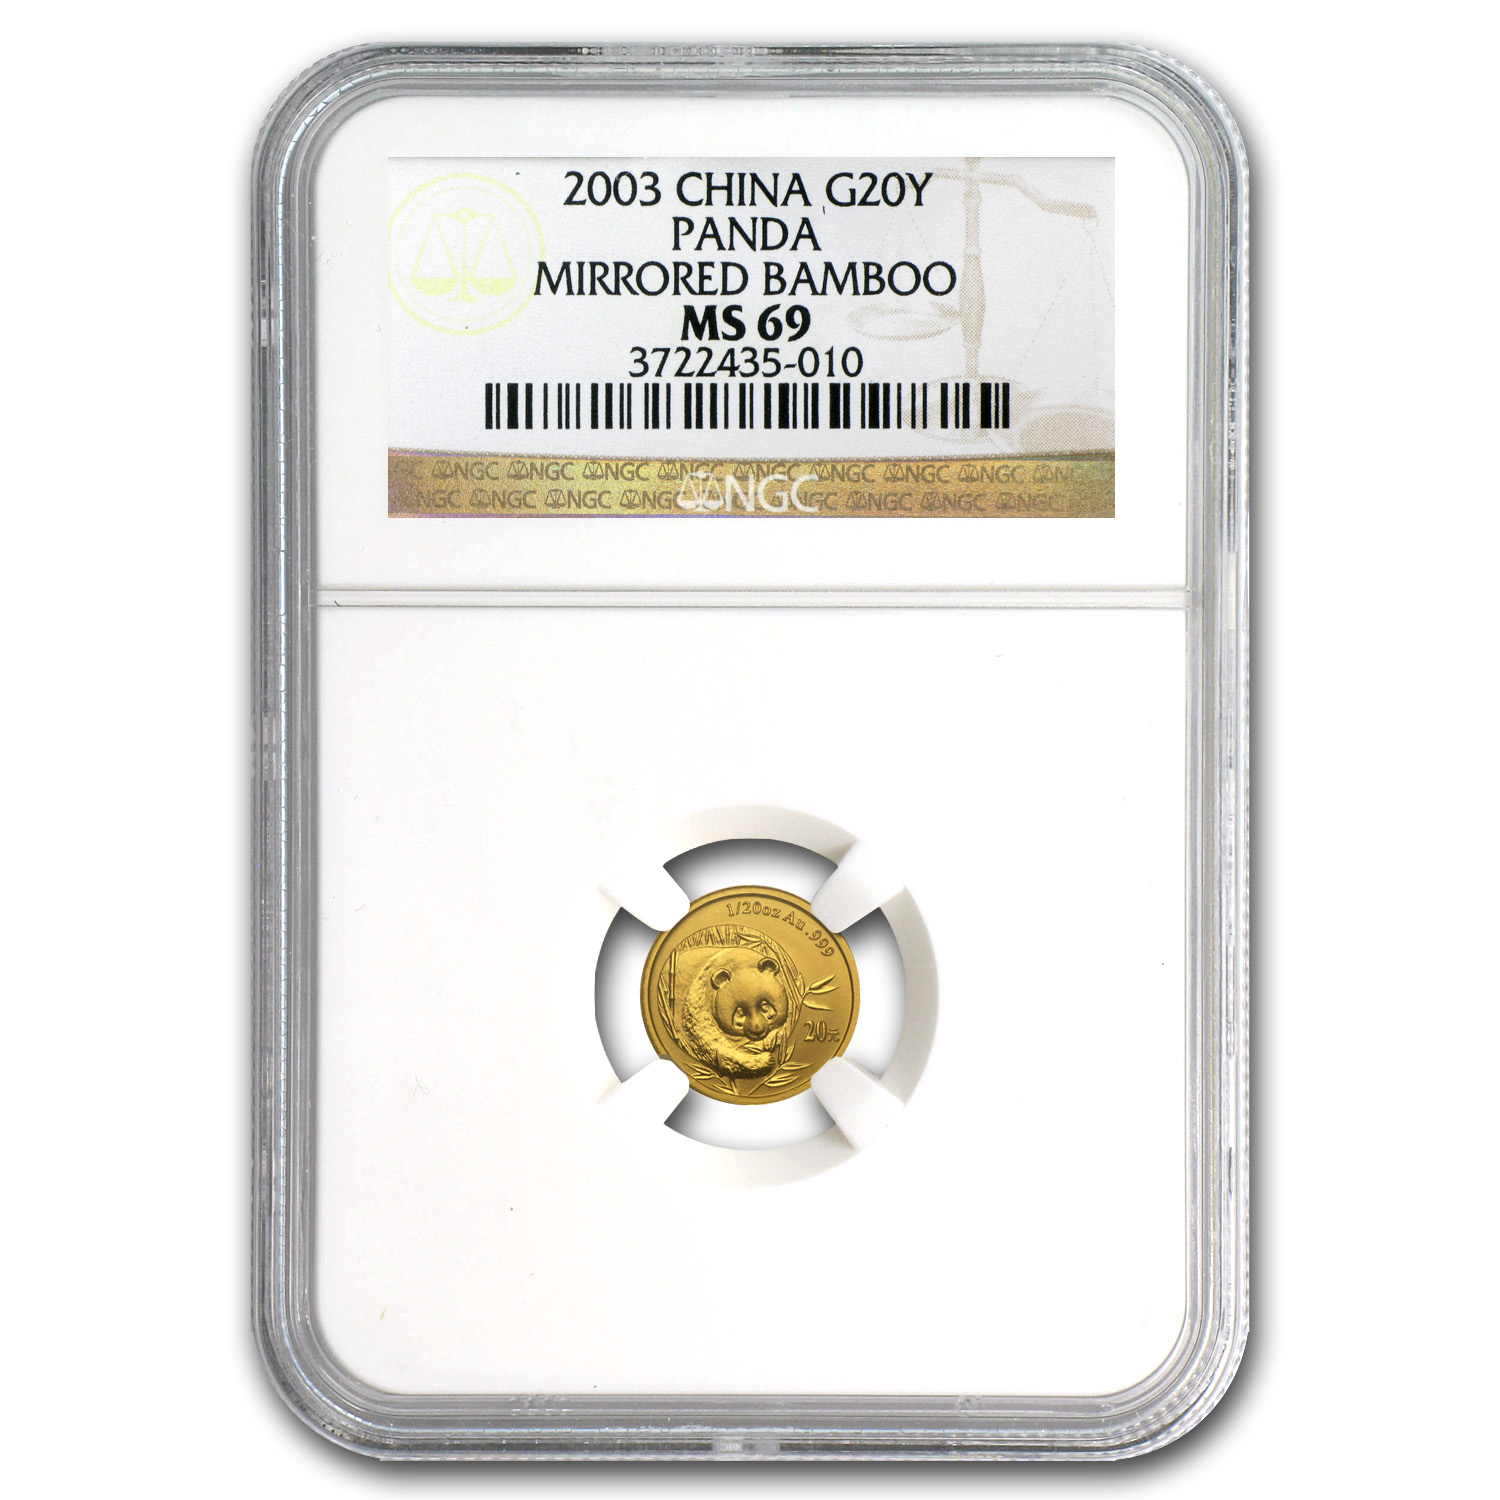 2003 China 1/20 oz Gold Panda Mirrored Bamboo MS-69 NGC